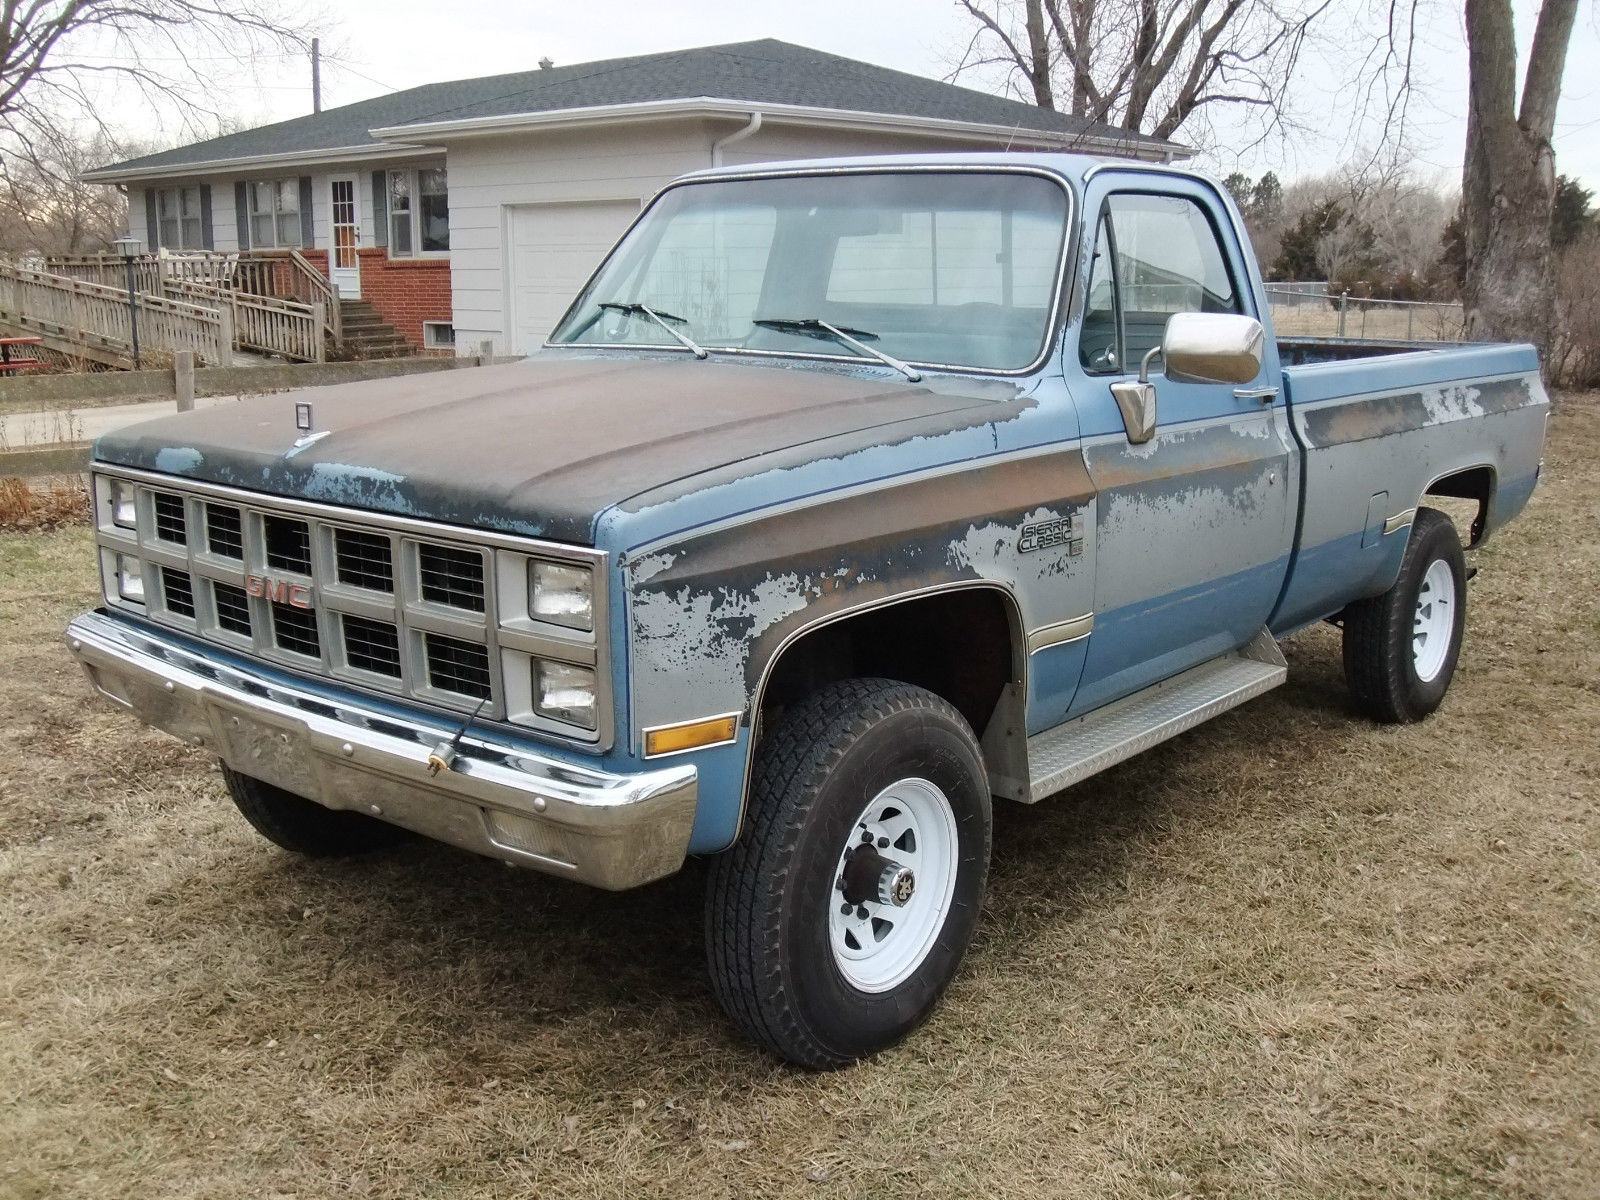 1982 gmc k2500 4x4 6 2l diesel oem paint 99 rustfree chevrolet c k pickup 2500 classic gmc. Black Bedroom Furniture Sets. Home Design Ideas